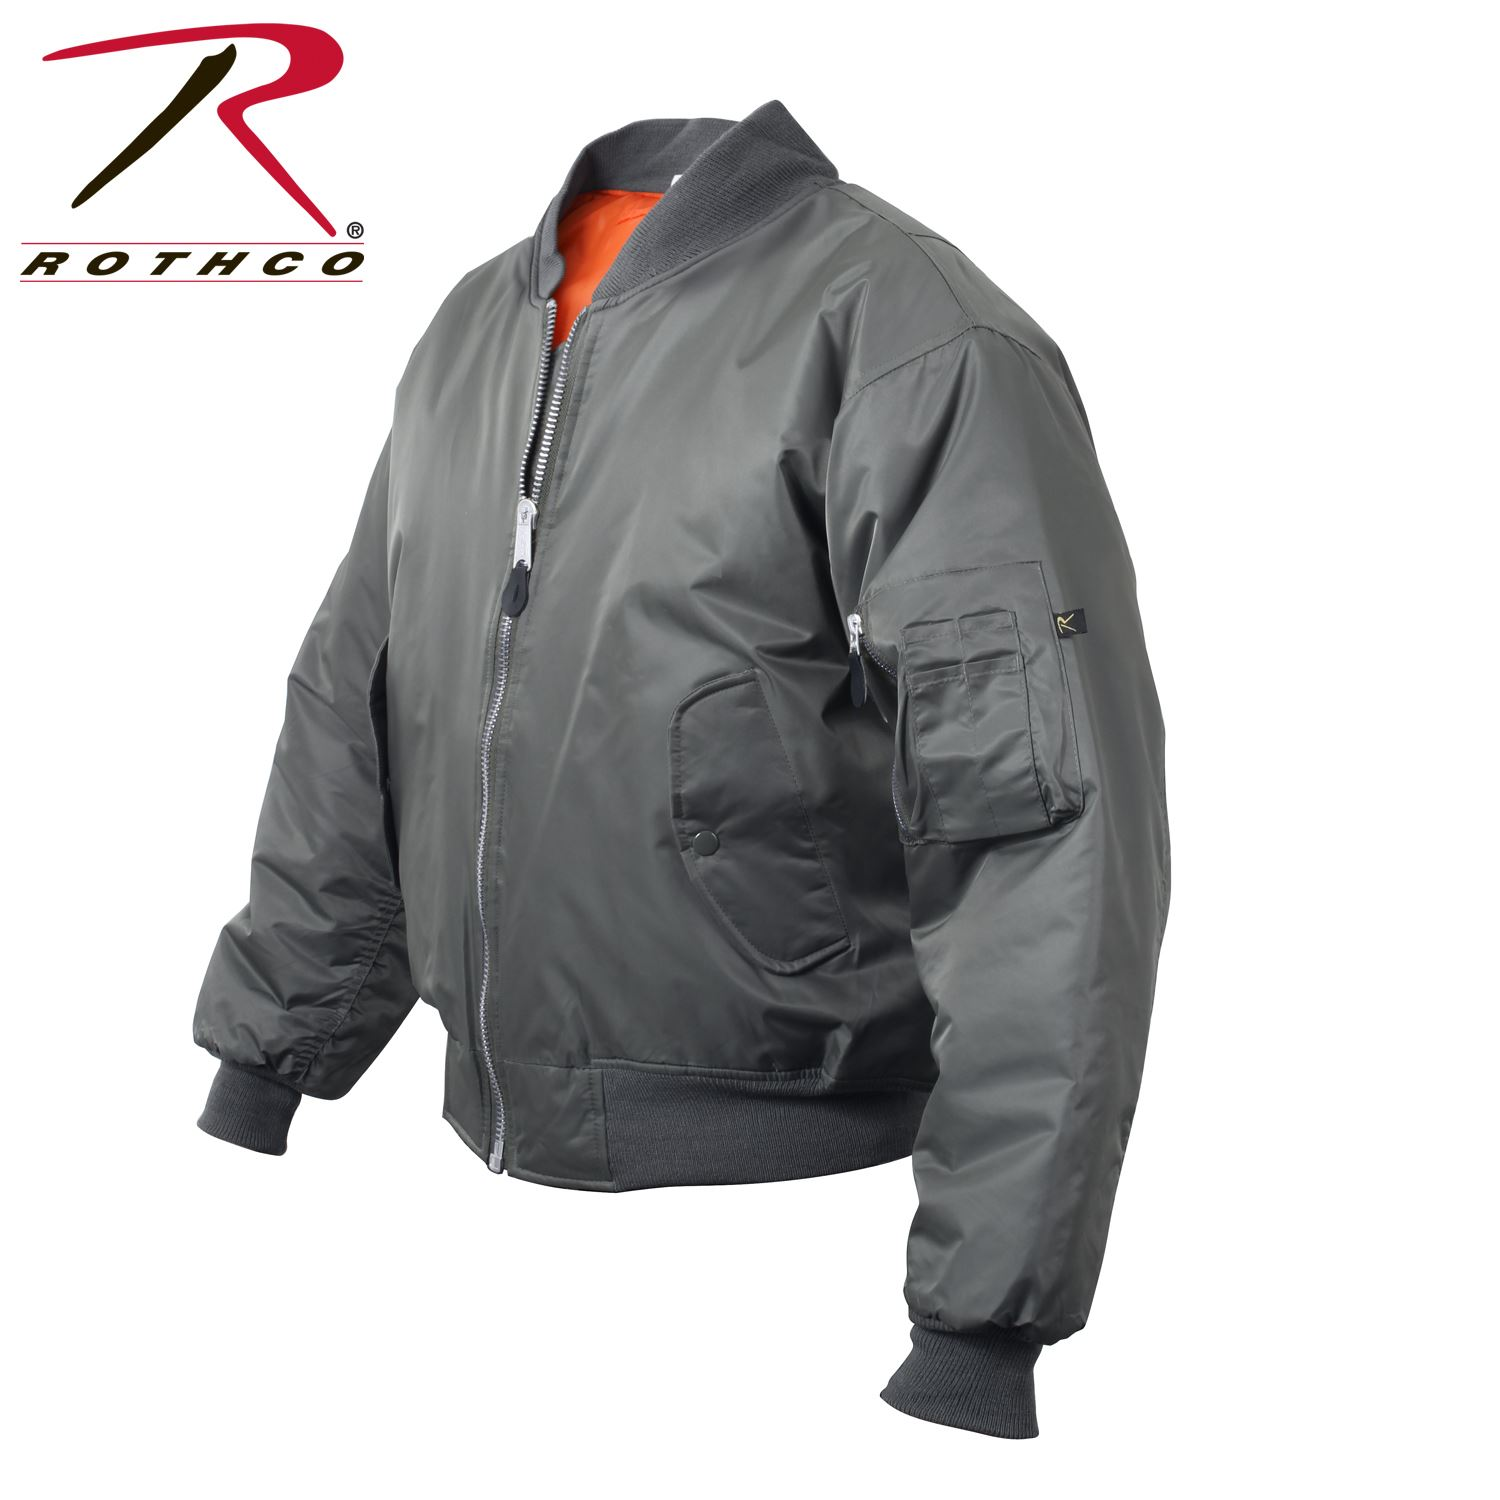 Fine Jacket Inc. Rothco MA-1 Flight Jacket